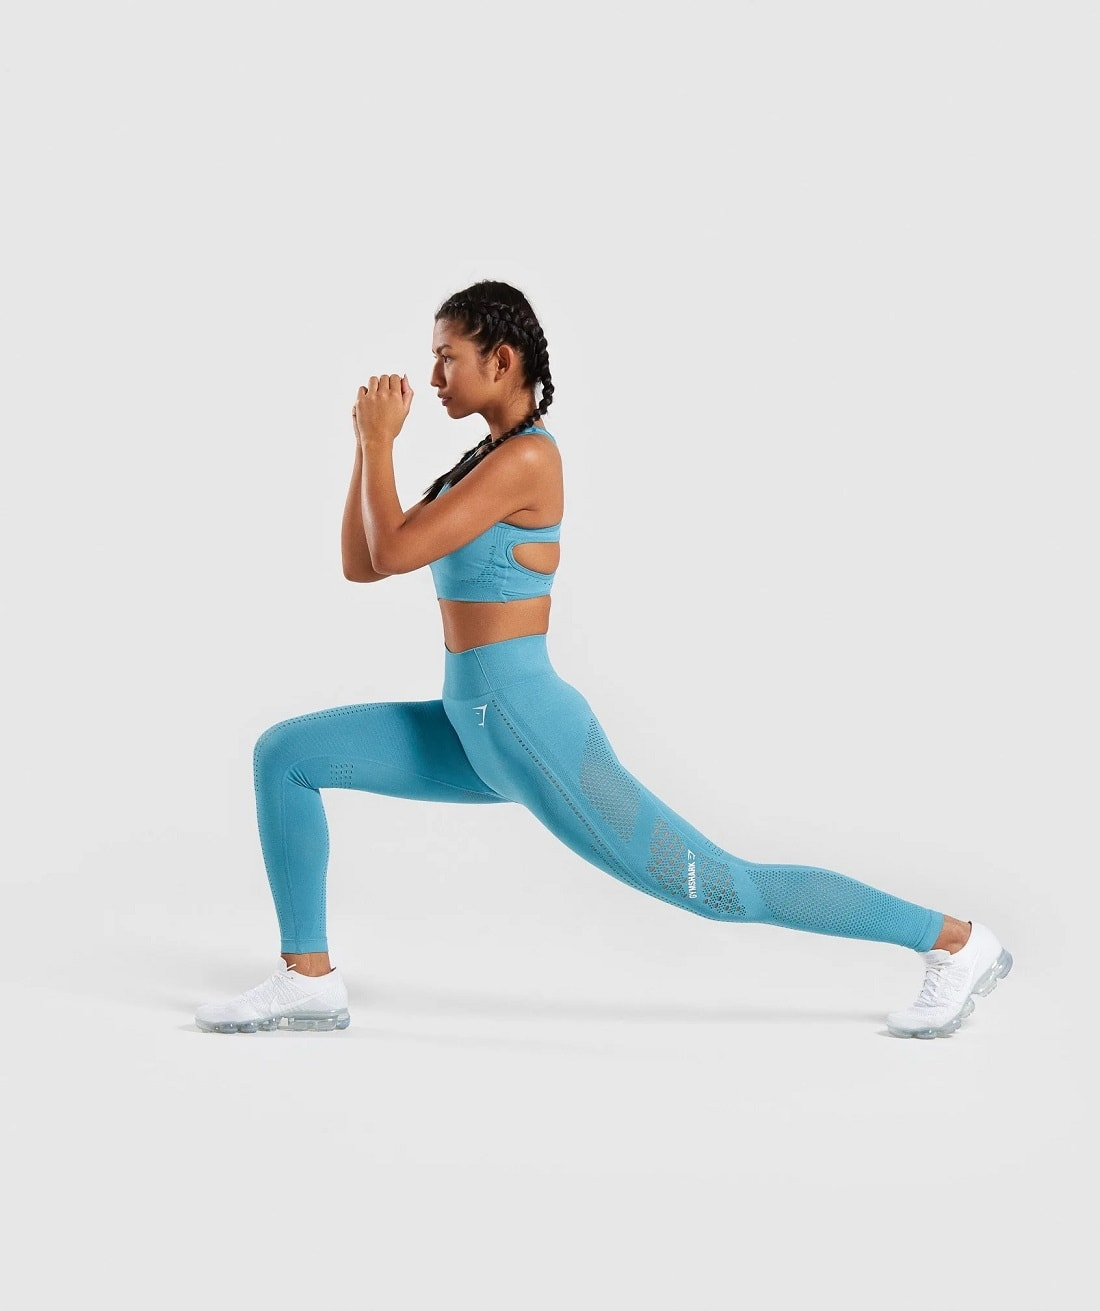 Best Gymshark Leggings for Working Out and Running